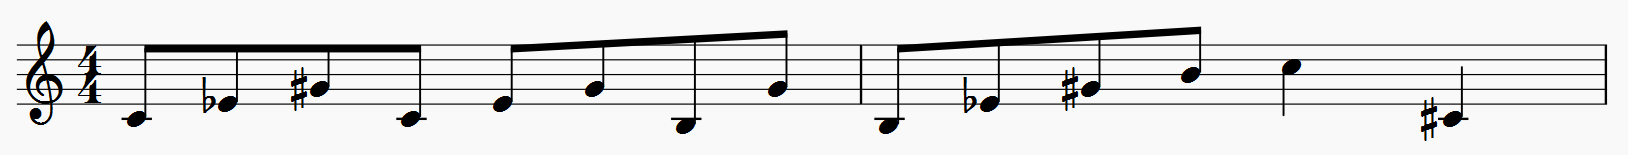 scale_melody_bad_score